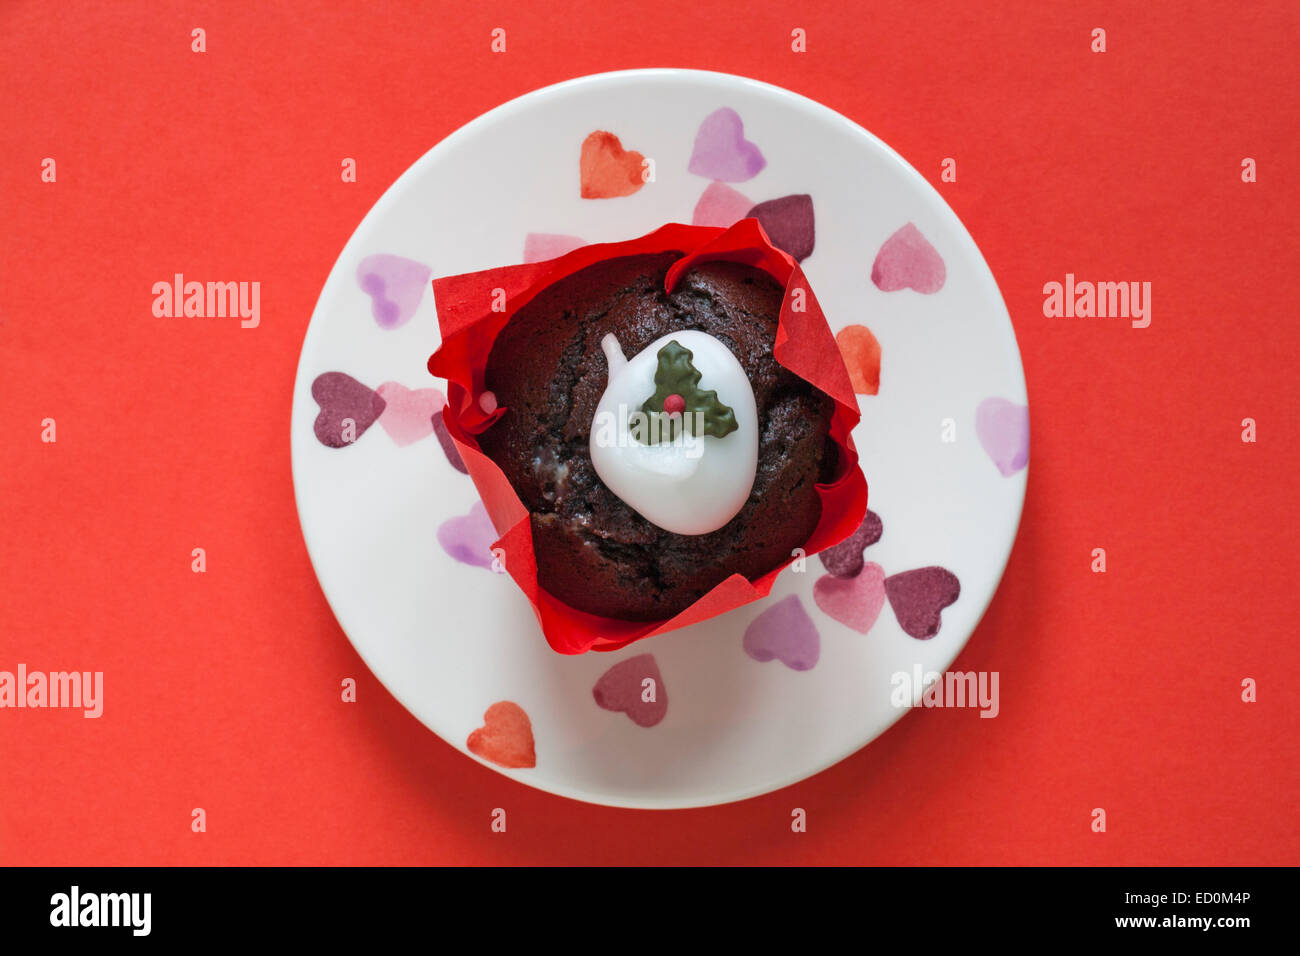 Tesco Merry Christmas Christmas Pudding Muffin On Heart Plate Stock Photo Alamy